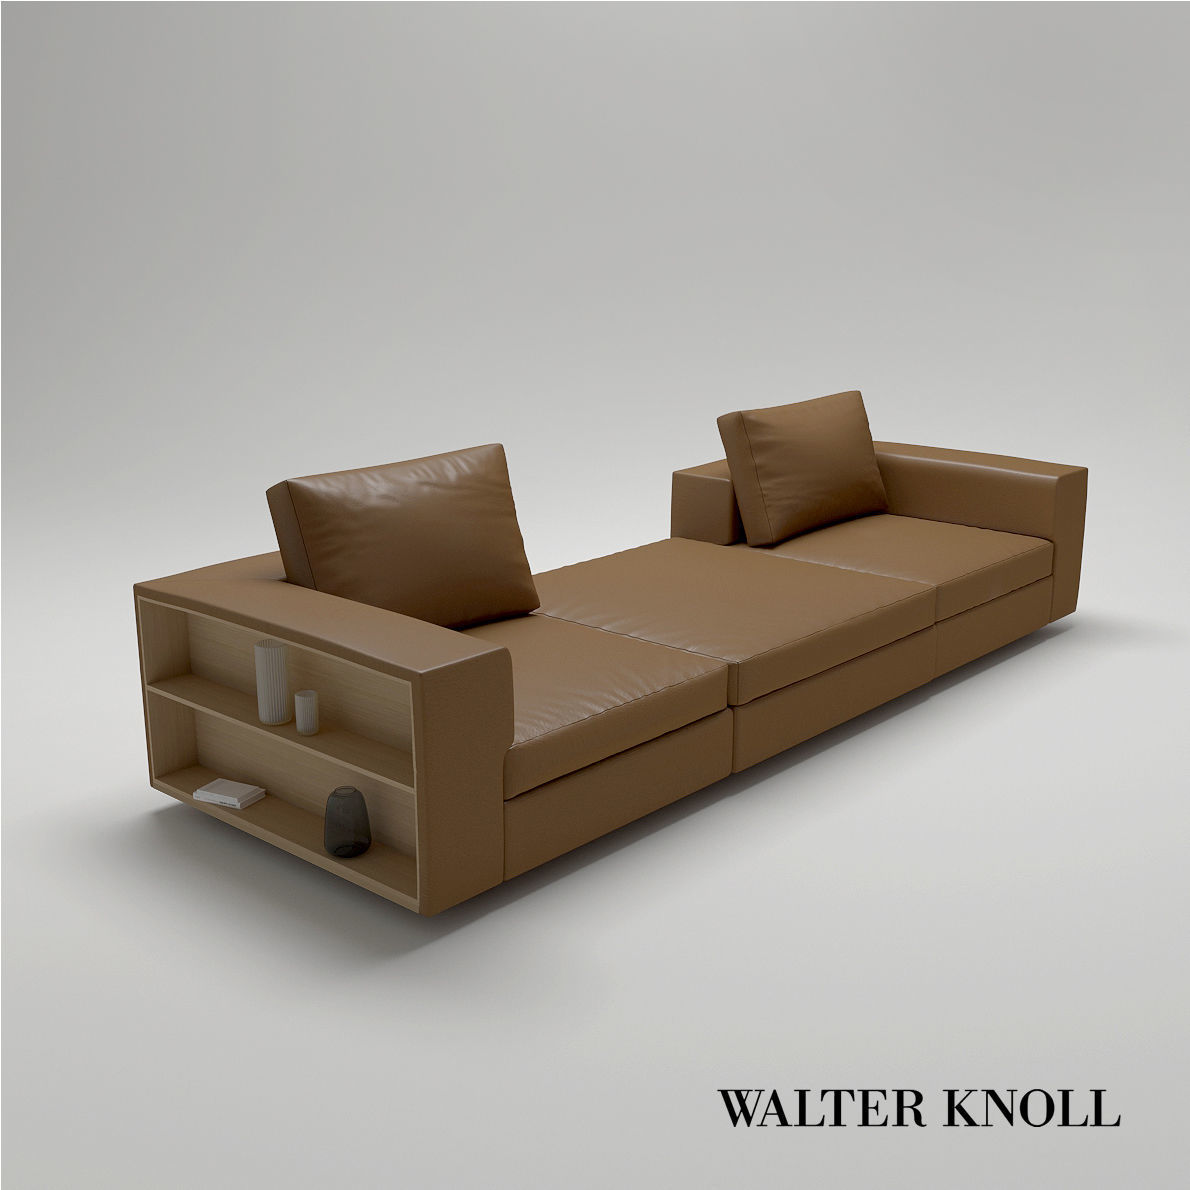 Walter Knoll Sofa Sofa Living Landscape 750 From Walter Knoll Design By Eoos 3d Model